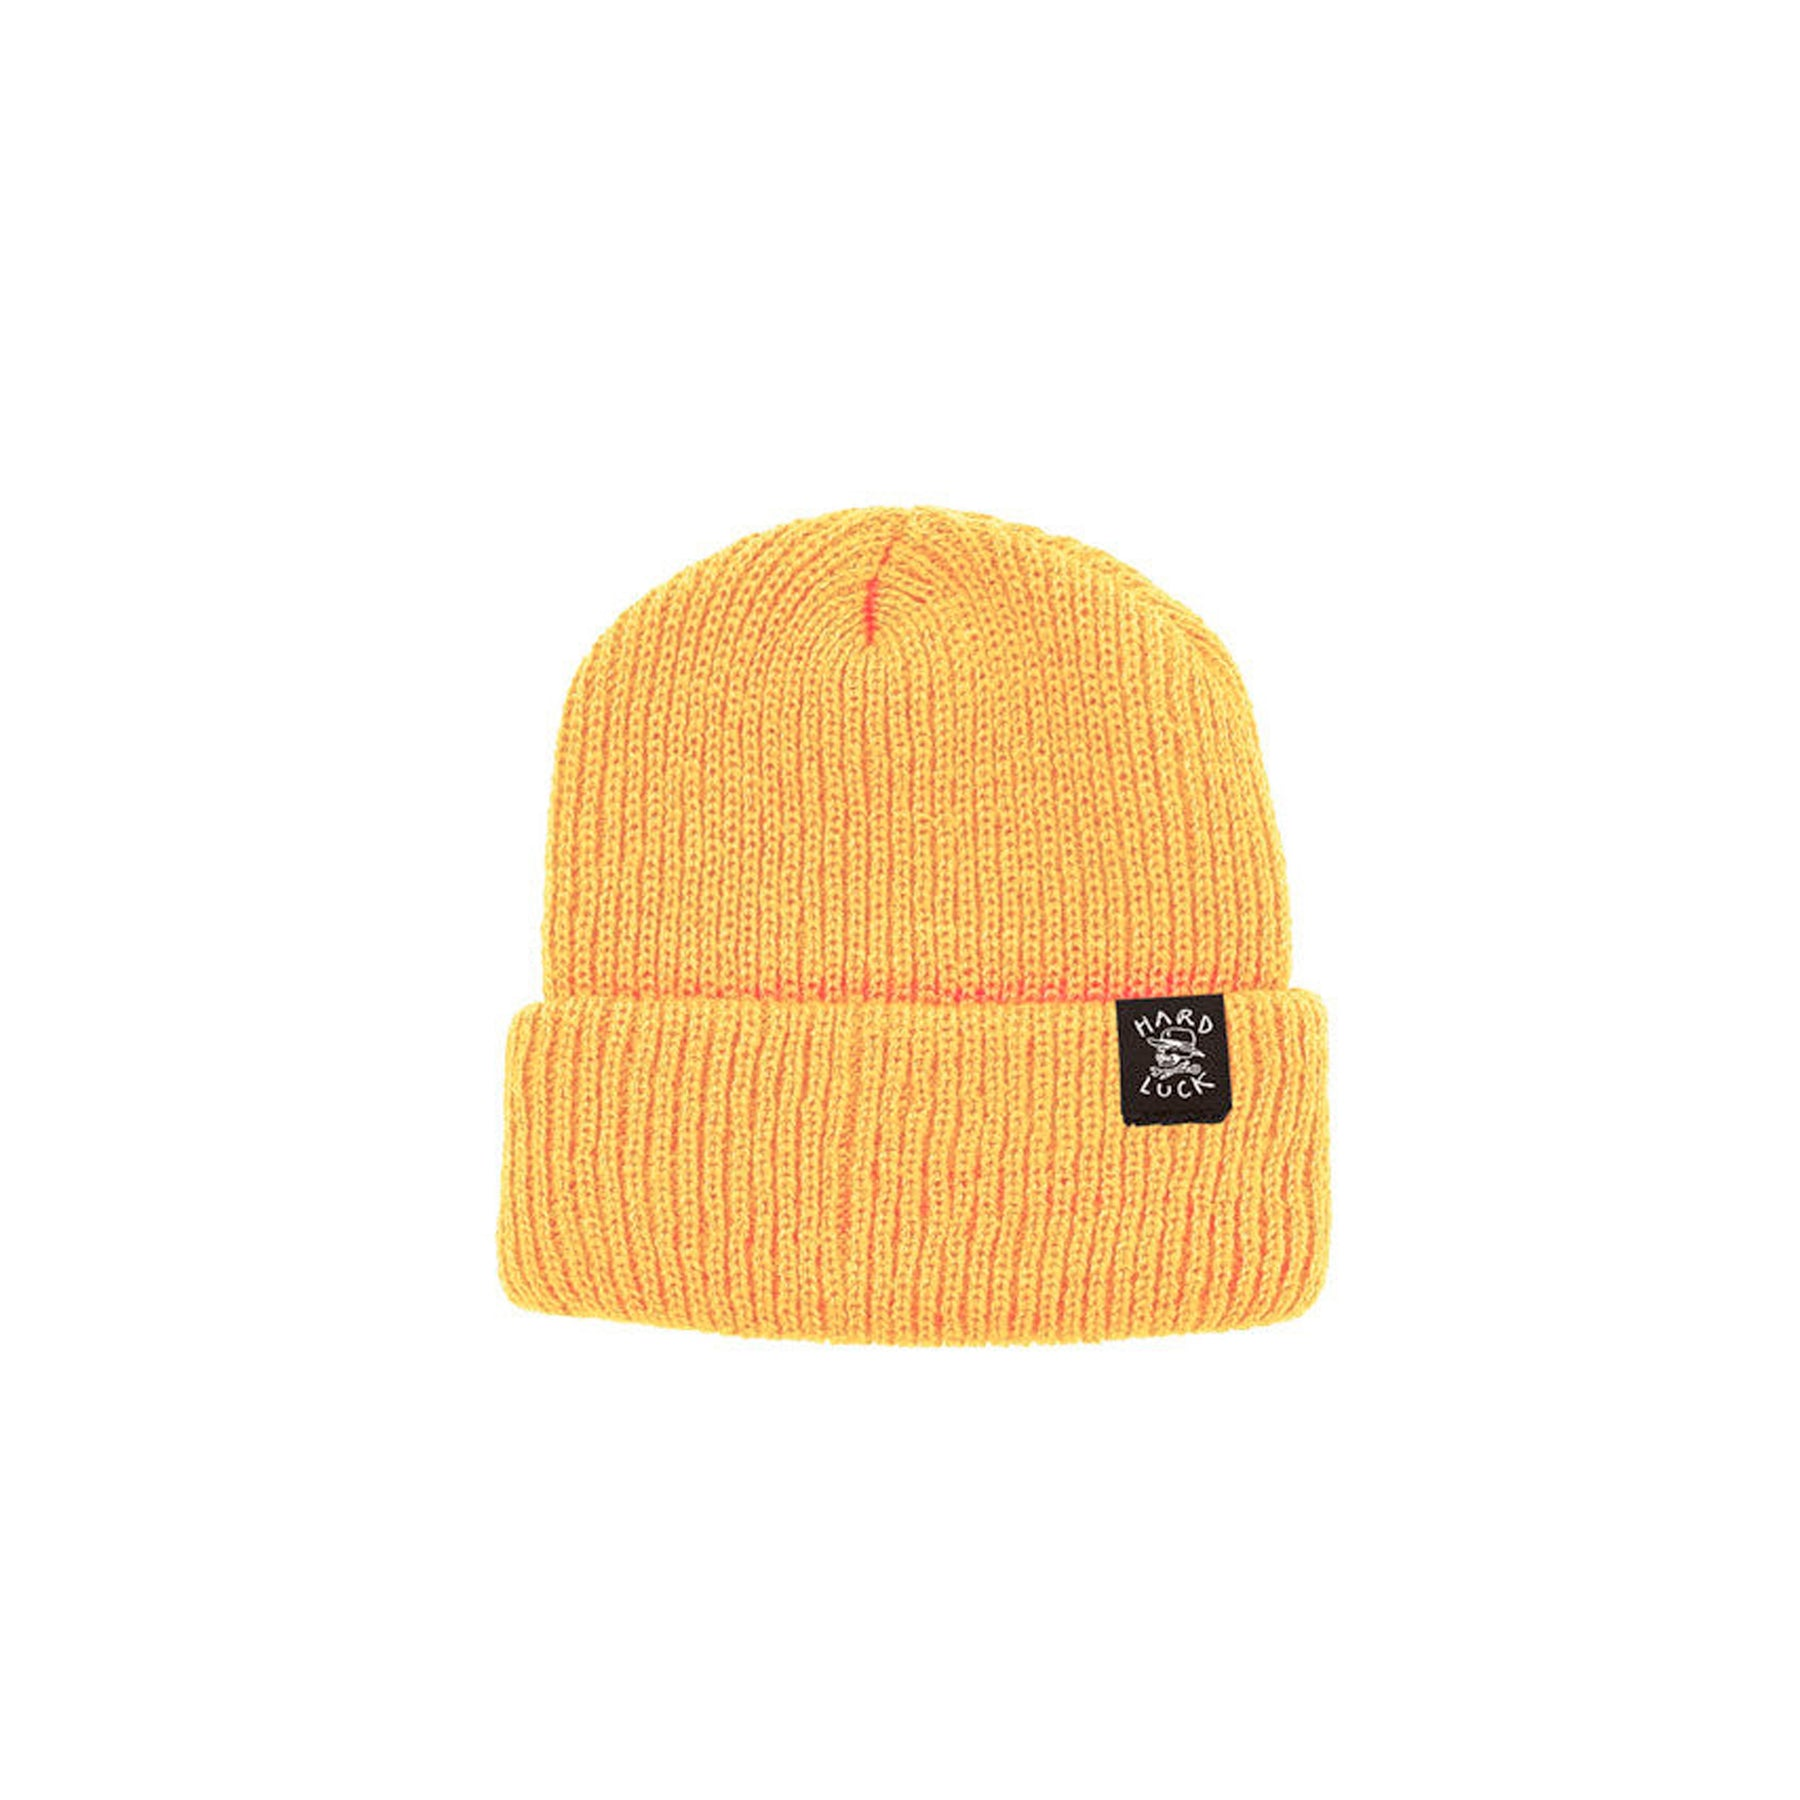 HARD LUCK OG LOGO WOVEN BEANIE YELLOW - Urban Ave Boardshop caf3b036d90